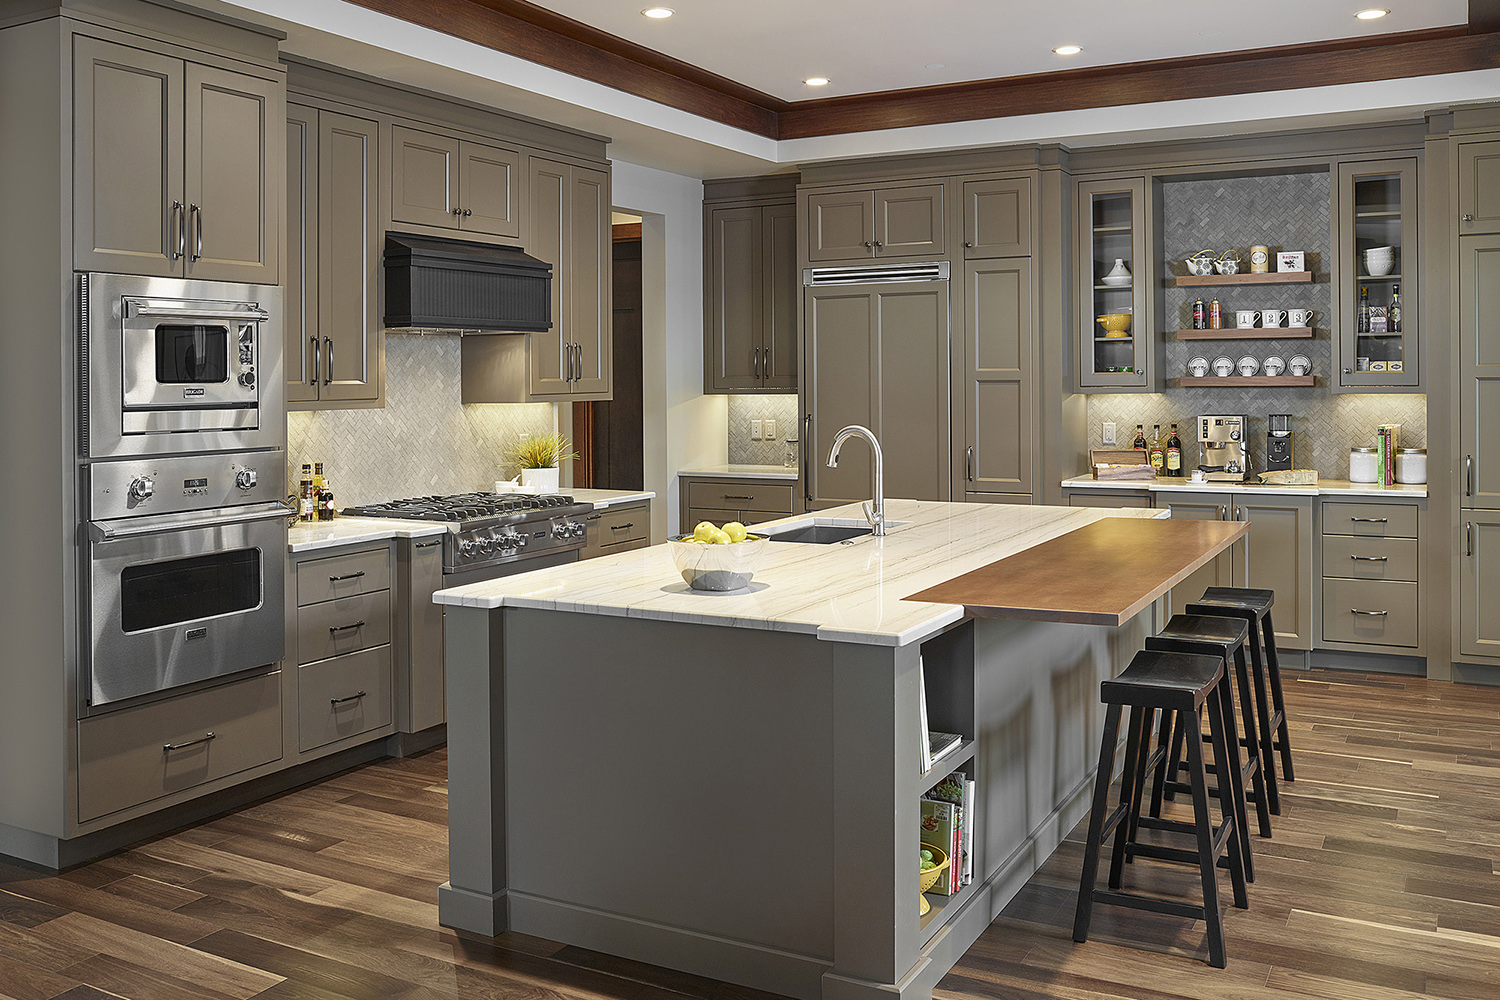 Transitional-Kitchen-Design.jpg